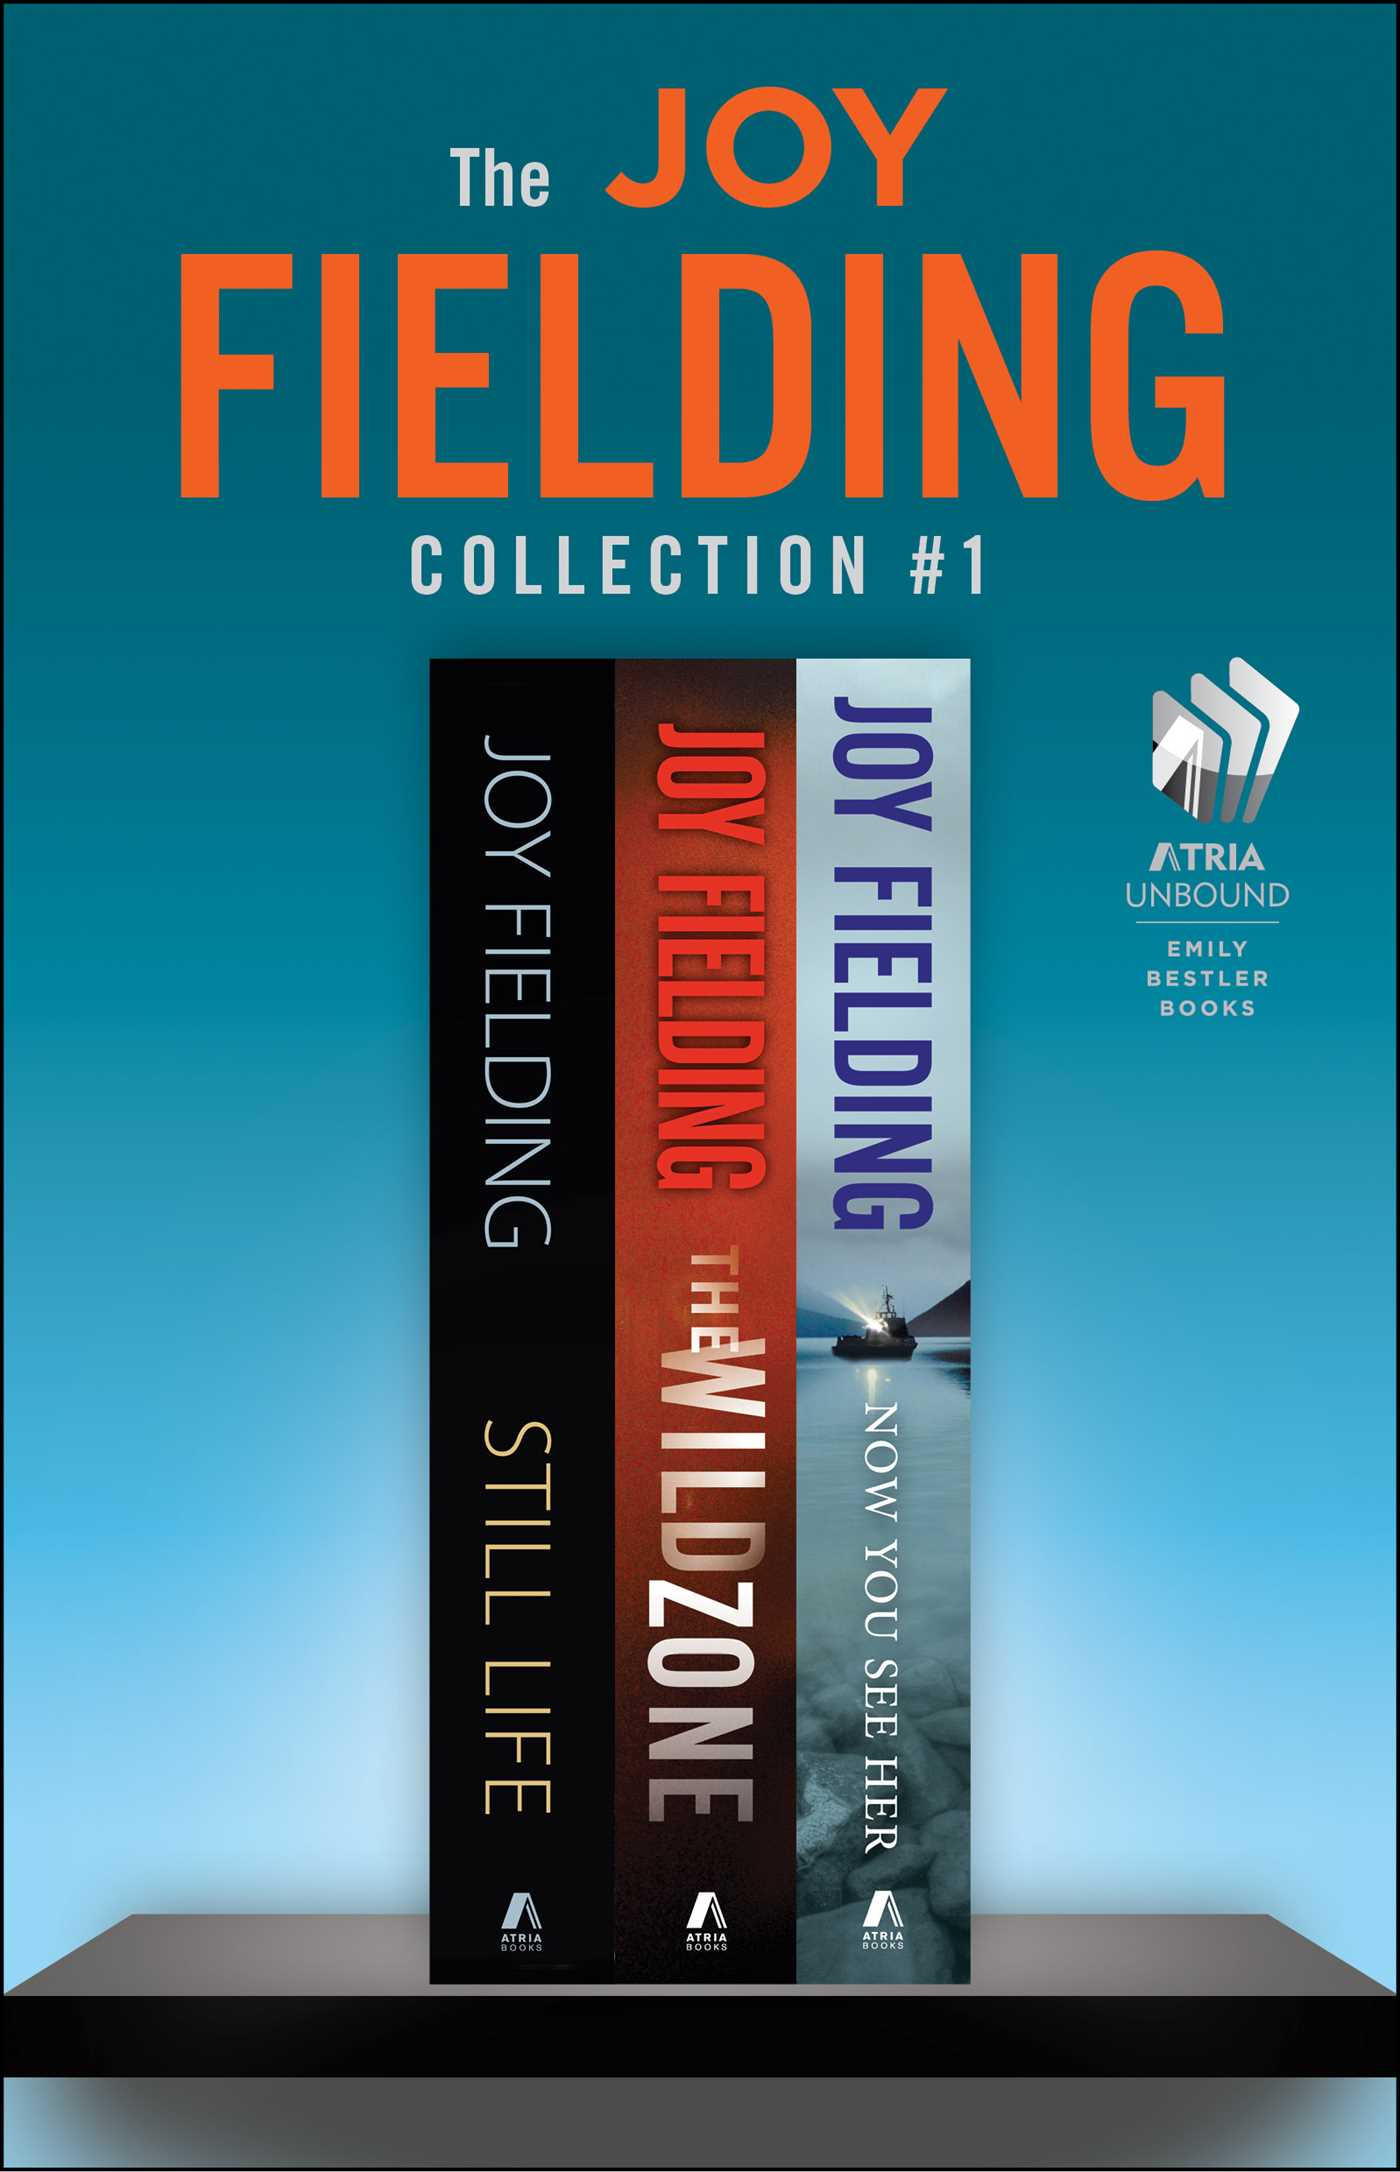 The joy fielding collection 1 9781476703954 hr